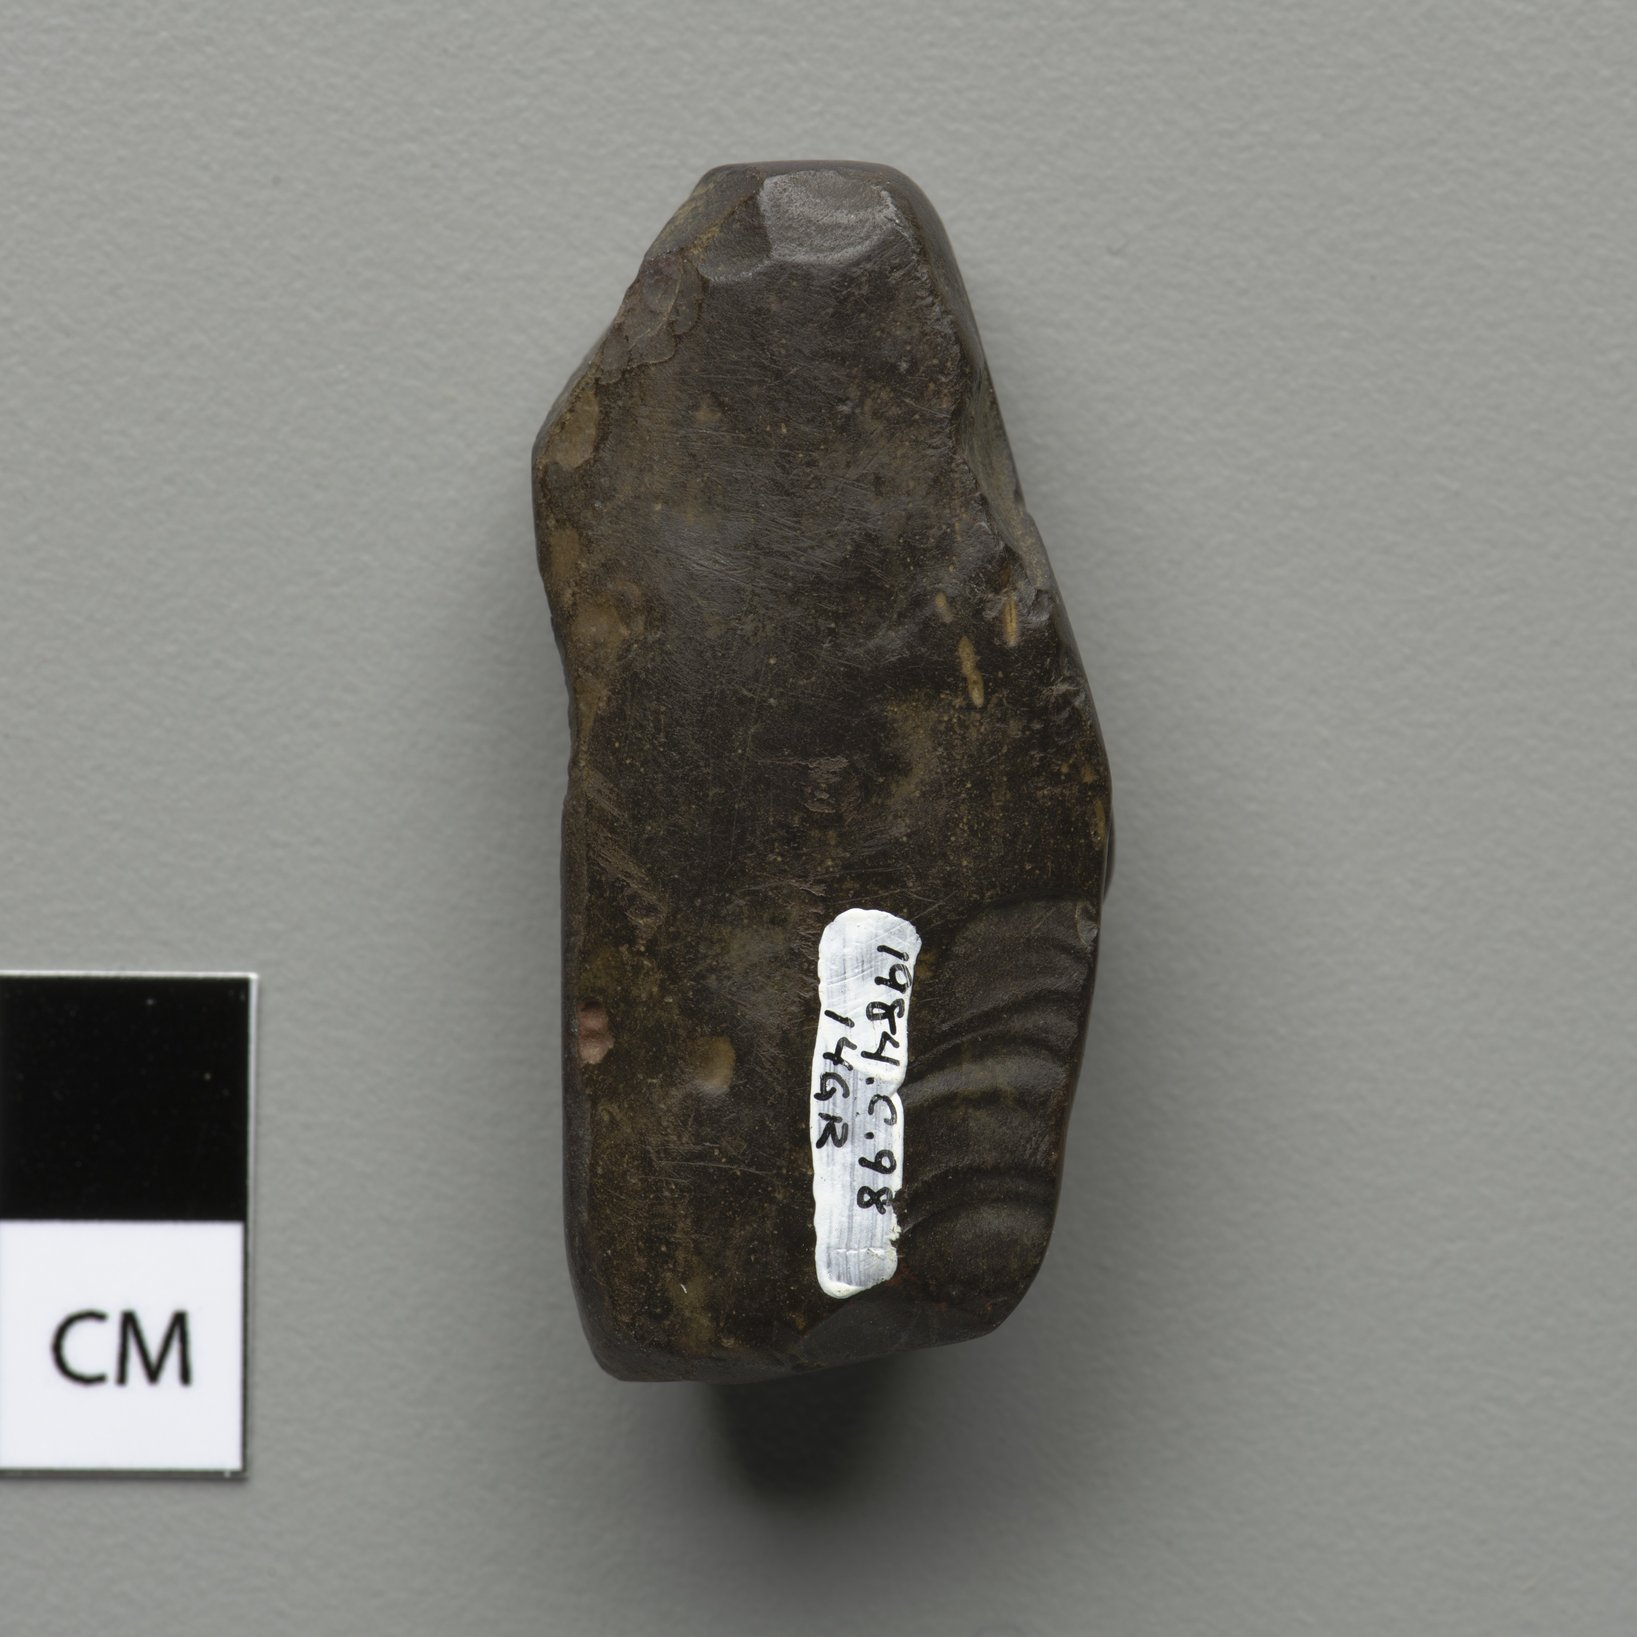 Hematite Artifact from Greenwood County - 5